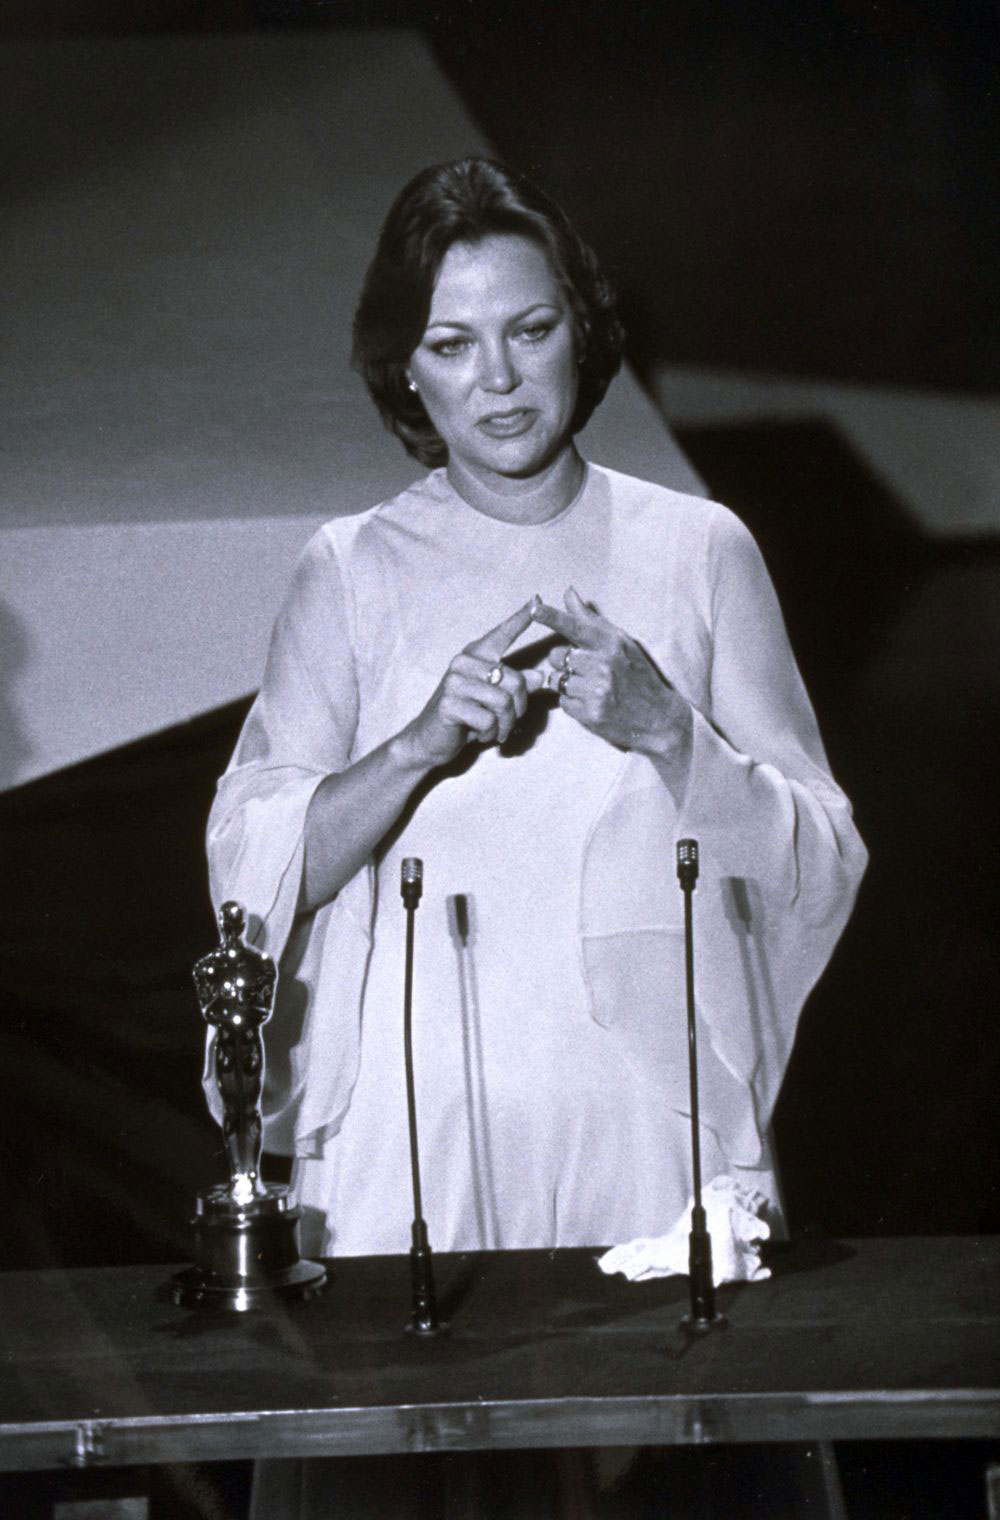 louise fletcher star treklouise fletcher oscar, louise fletcher actress, louise fletcher interview, louise fletcher oscar speech, louise fletcher imdb, louise fletcher net worth, louise fletcher jack nicholson, louise fletcher young, louise fletcher height, louise fletcher movies, louise fletcher shameless, louise fletcher feet, louise fletcher facebook, louise fletcher pwc, louise fletcher star trek, louise fletcher flowers in the attic, louise fletcher acceptance speech, louise fletcher hot